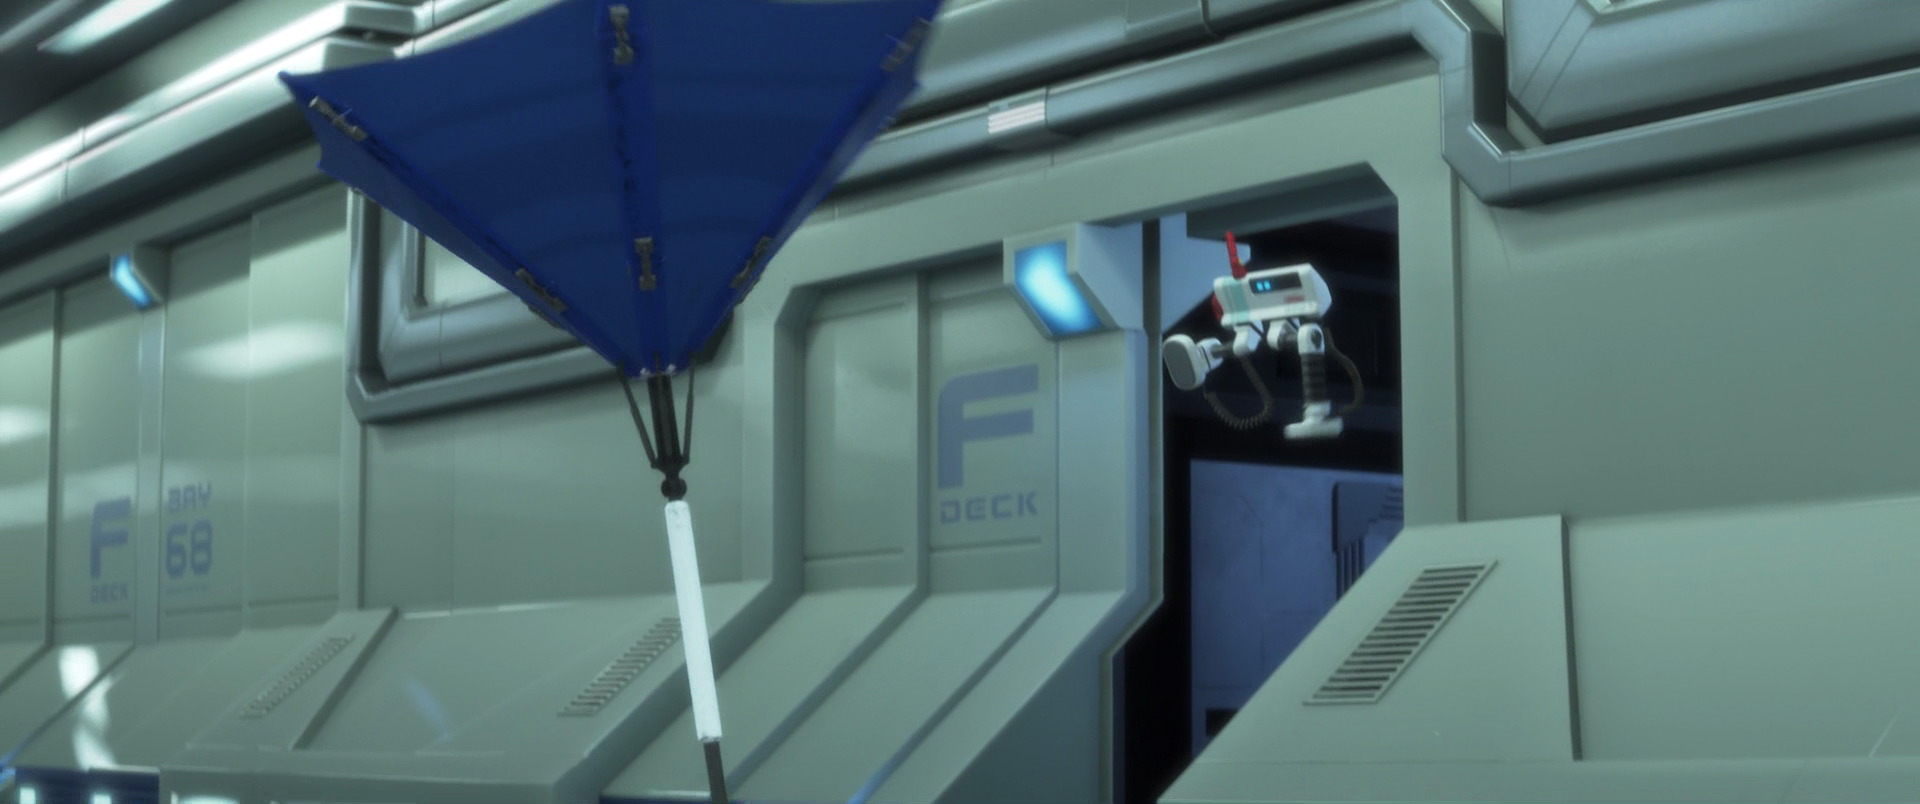 """BRL-A, character from """"WALL-E"""". 